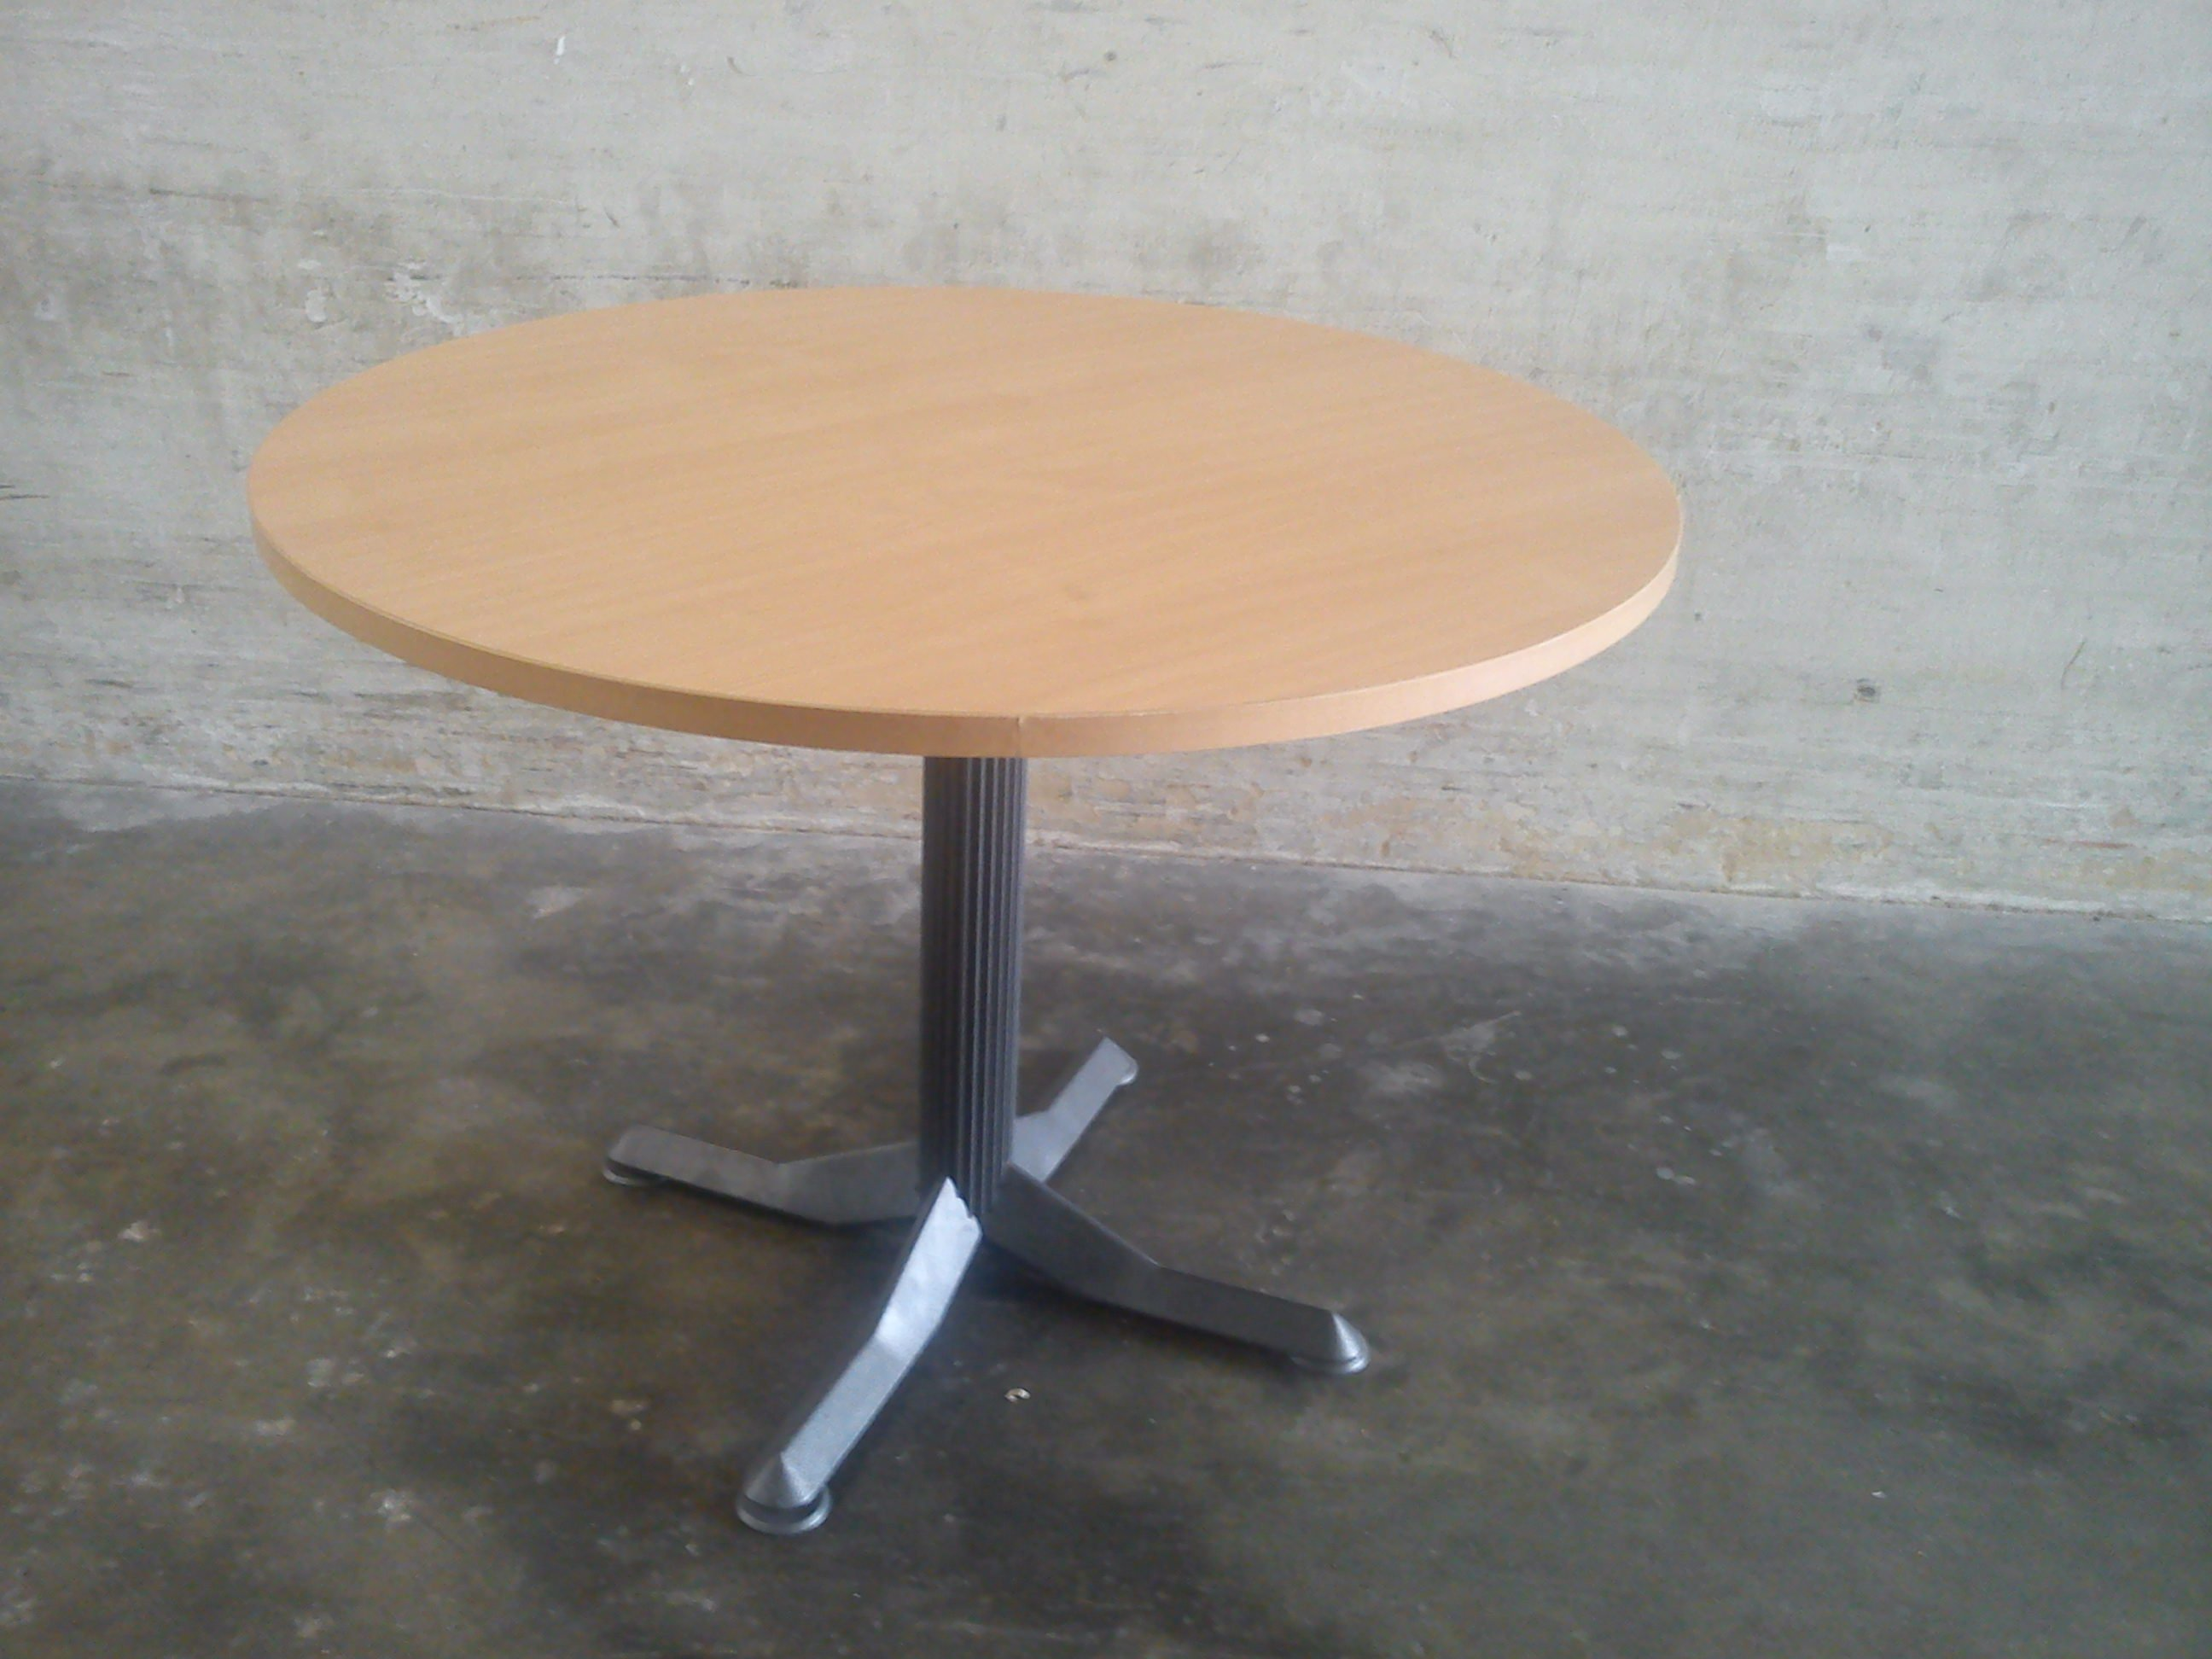 FOR SALE: Meeting Table 6ft Oval Shape 3 to 4ft width $150, round table $50up